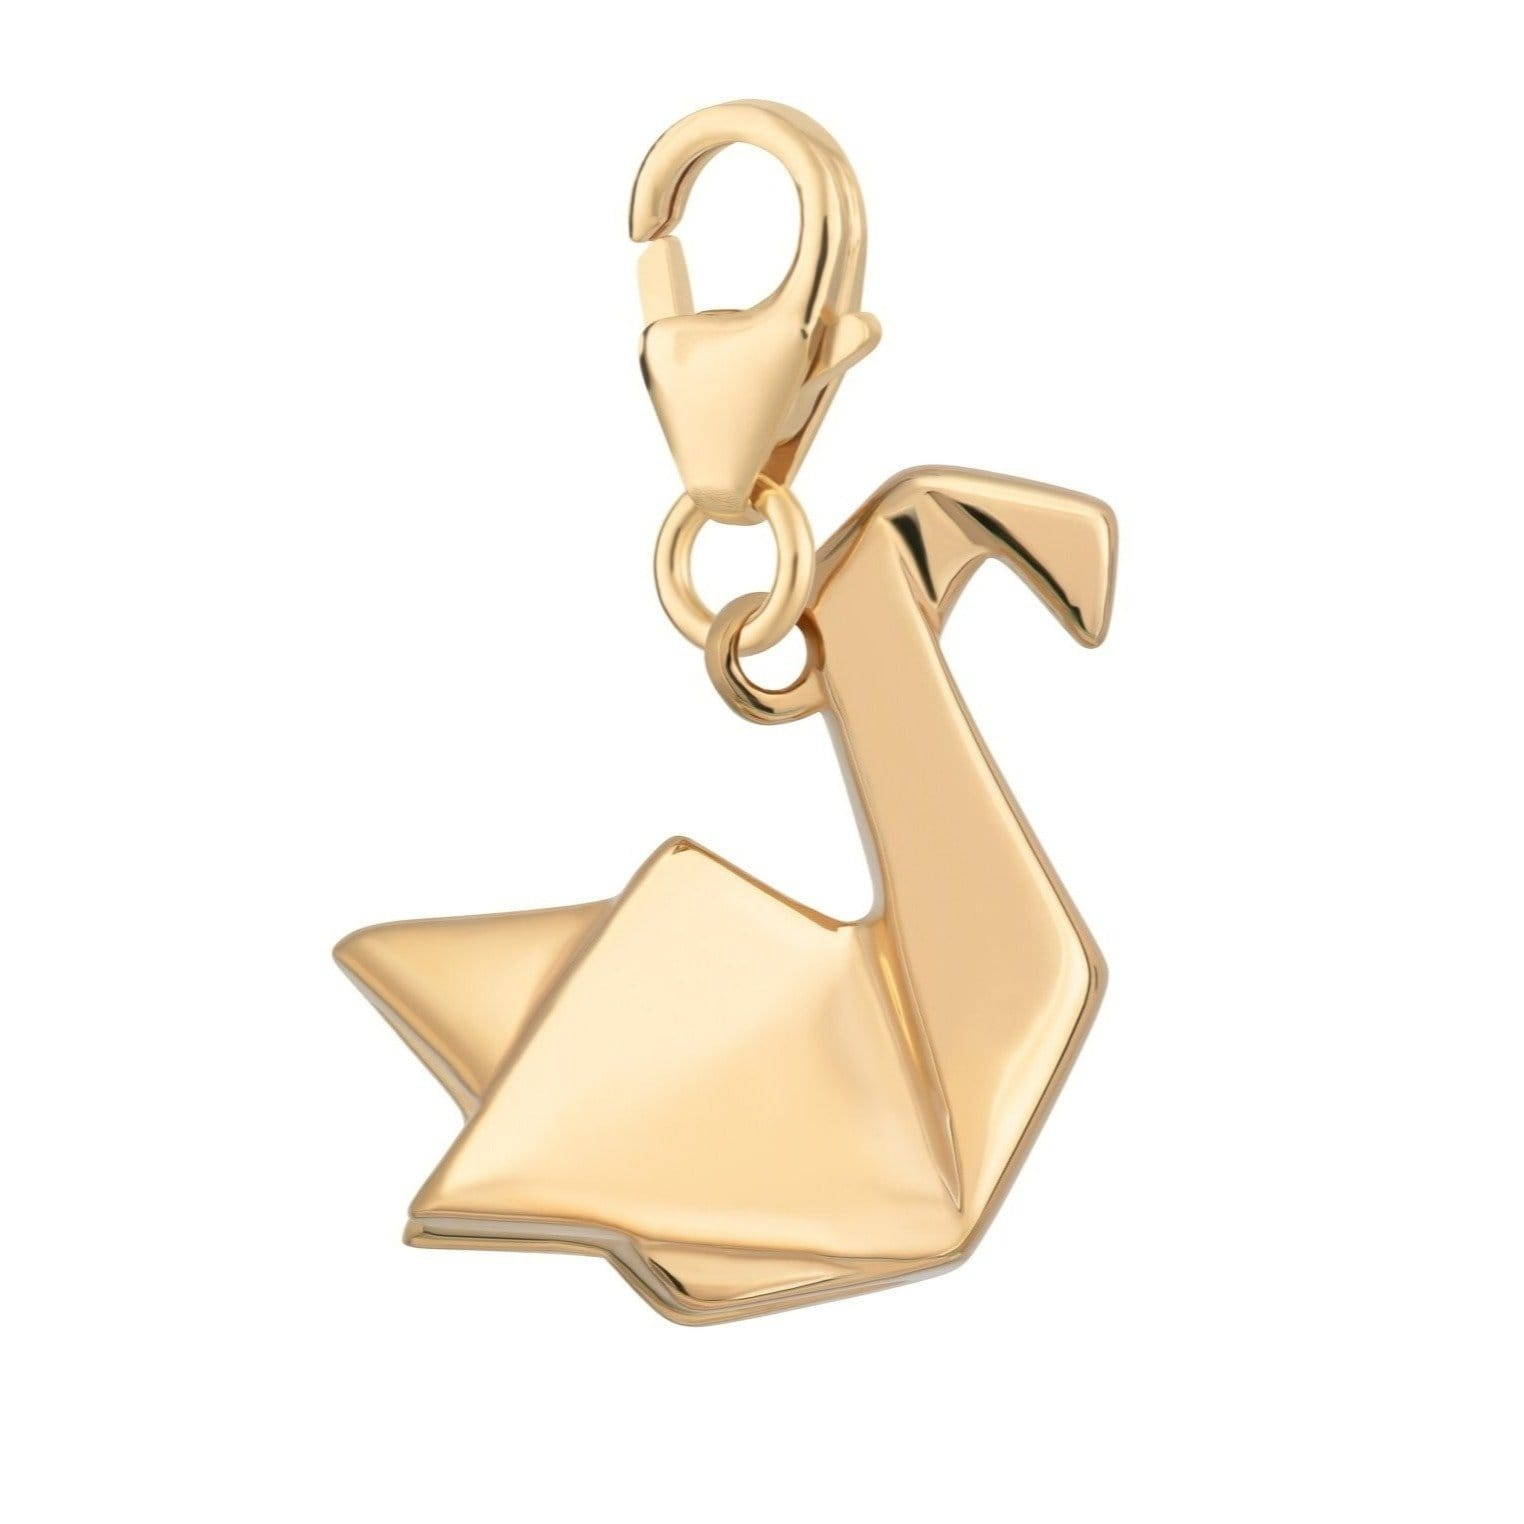 Gold Plated Origami Swan Charm